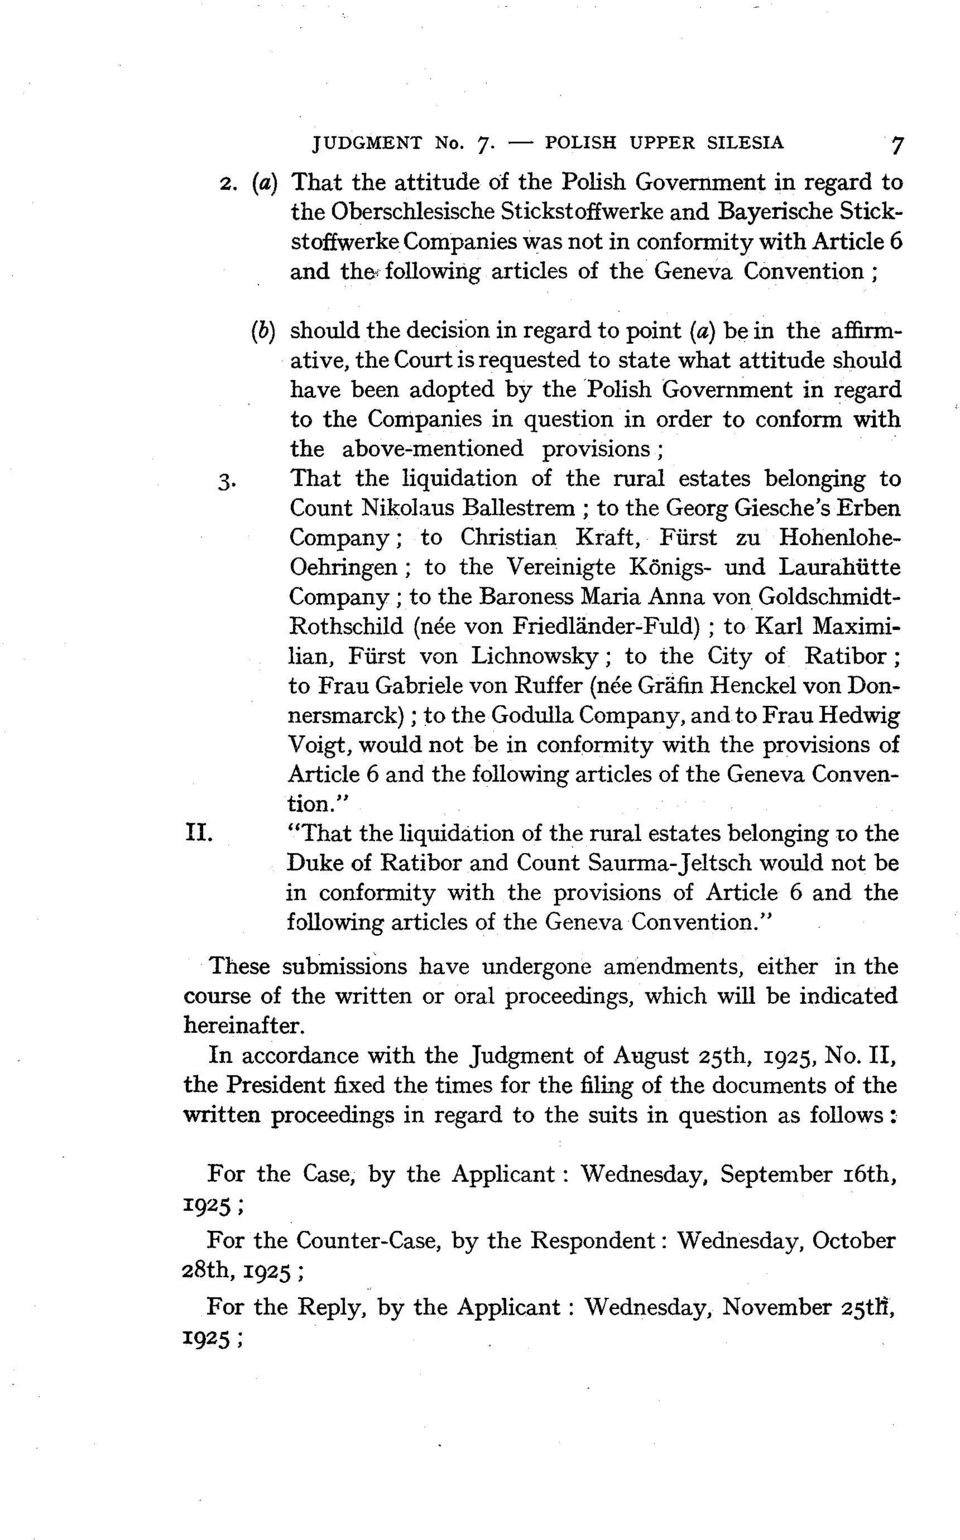 of the Geneva Convention ; (b) should the decision in regard to point (a) be in the affirmative, the Court is requested to state what attitude should have been adopted by the Polish Government in